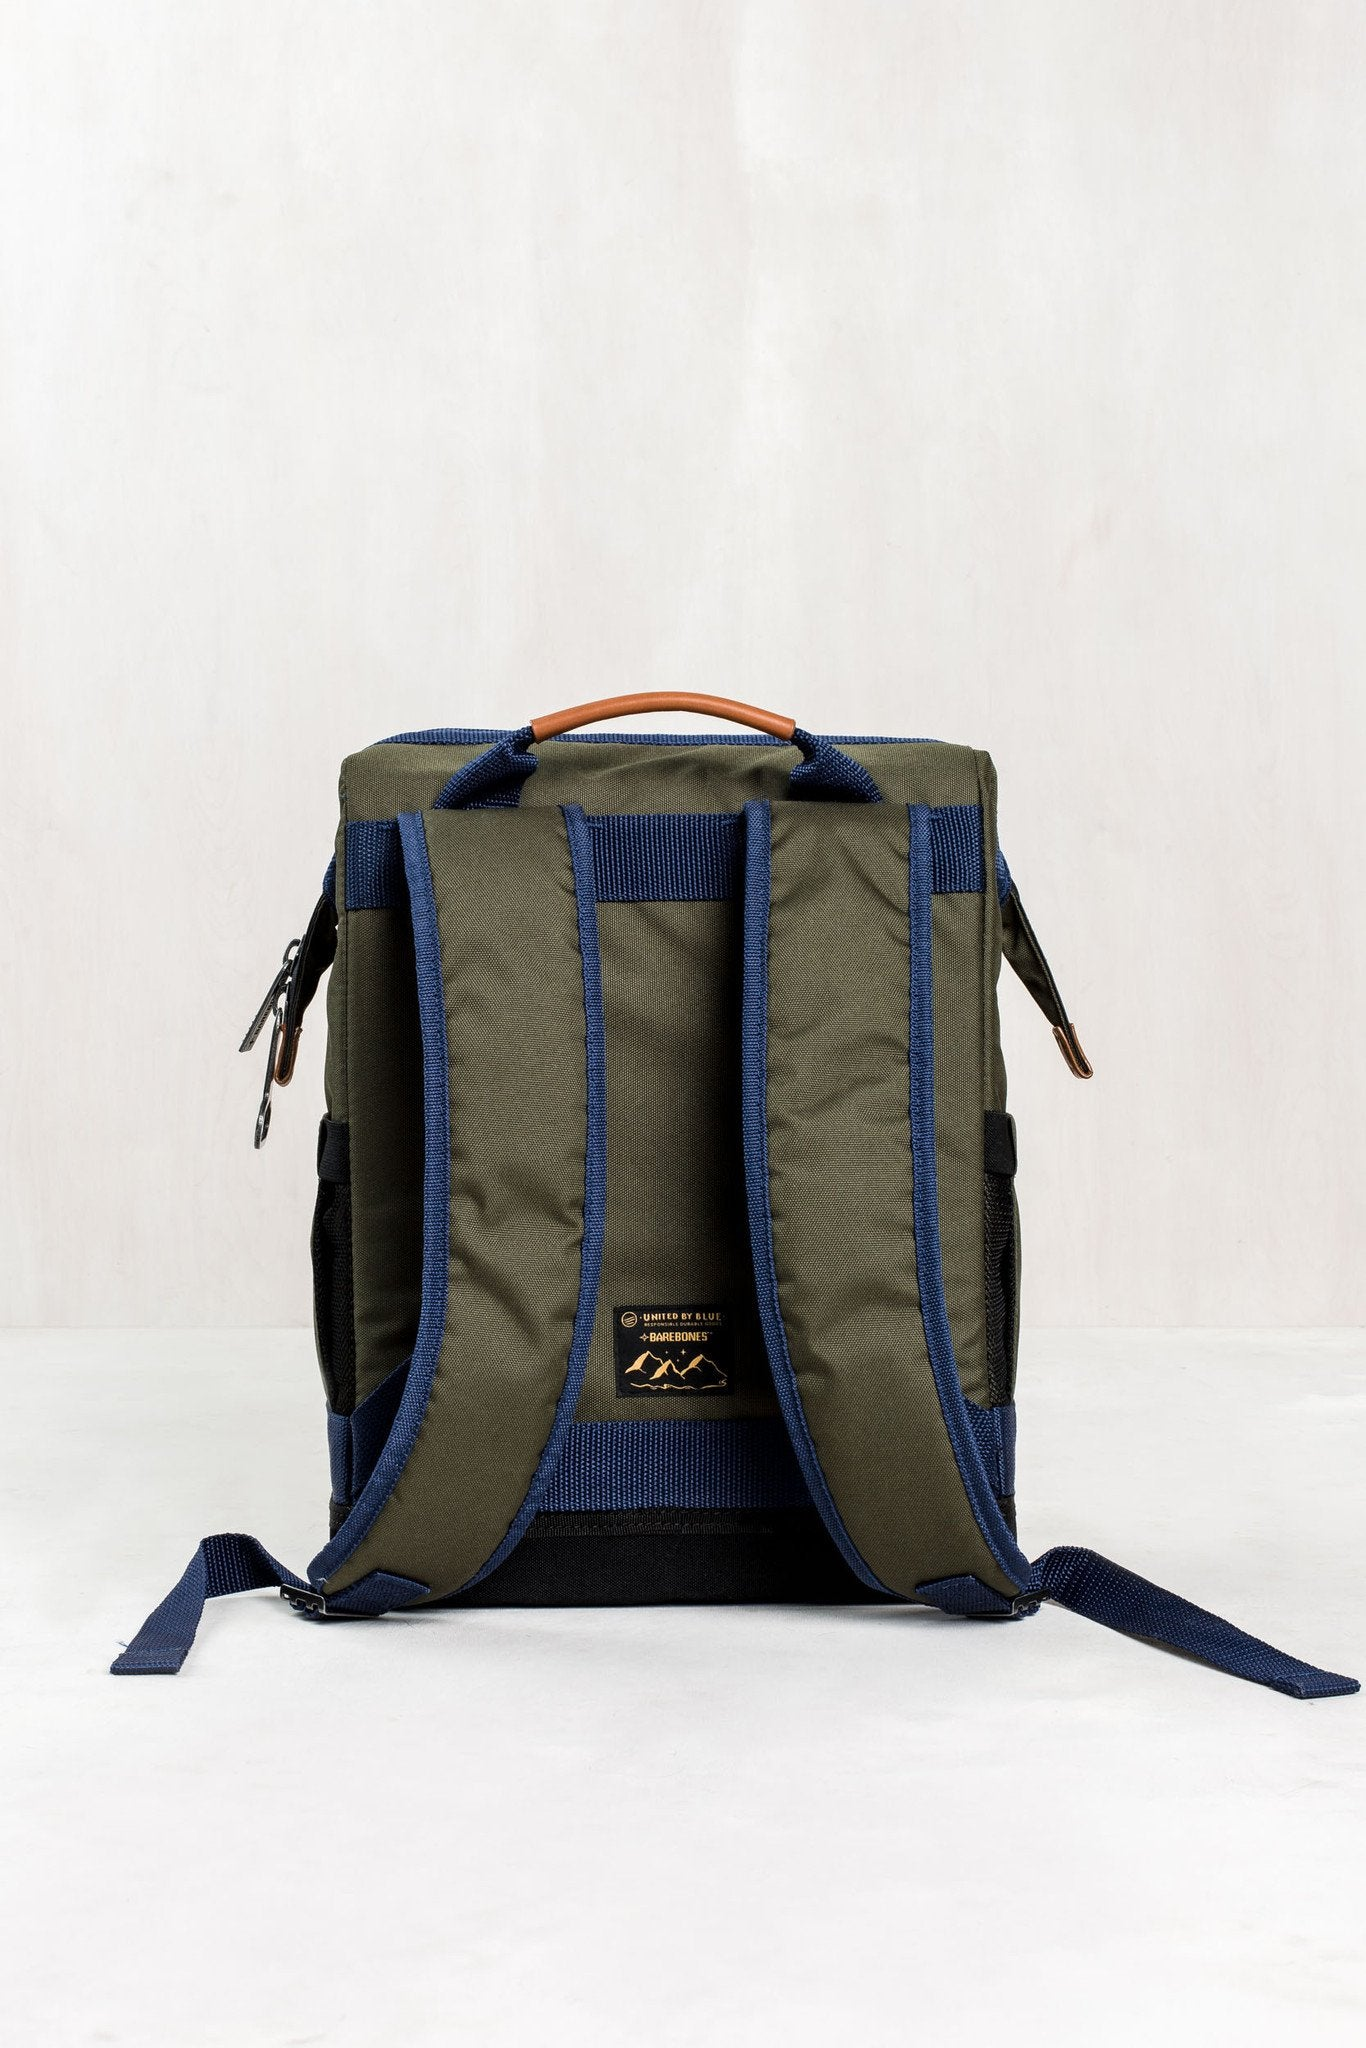 UBB x Barebones Cooler Backpack